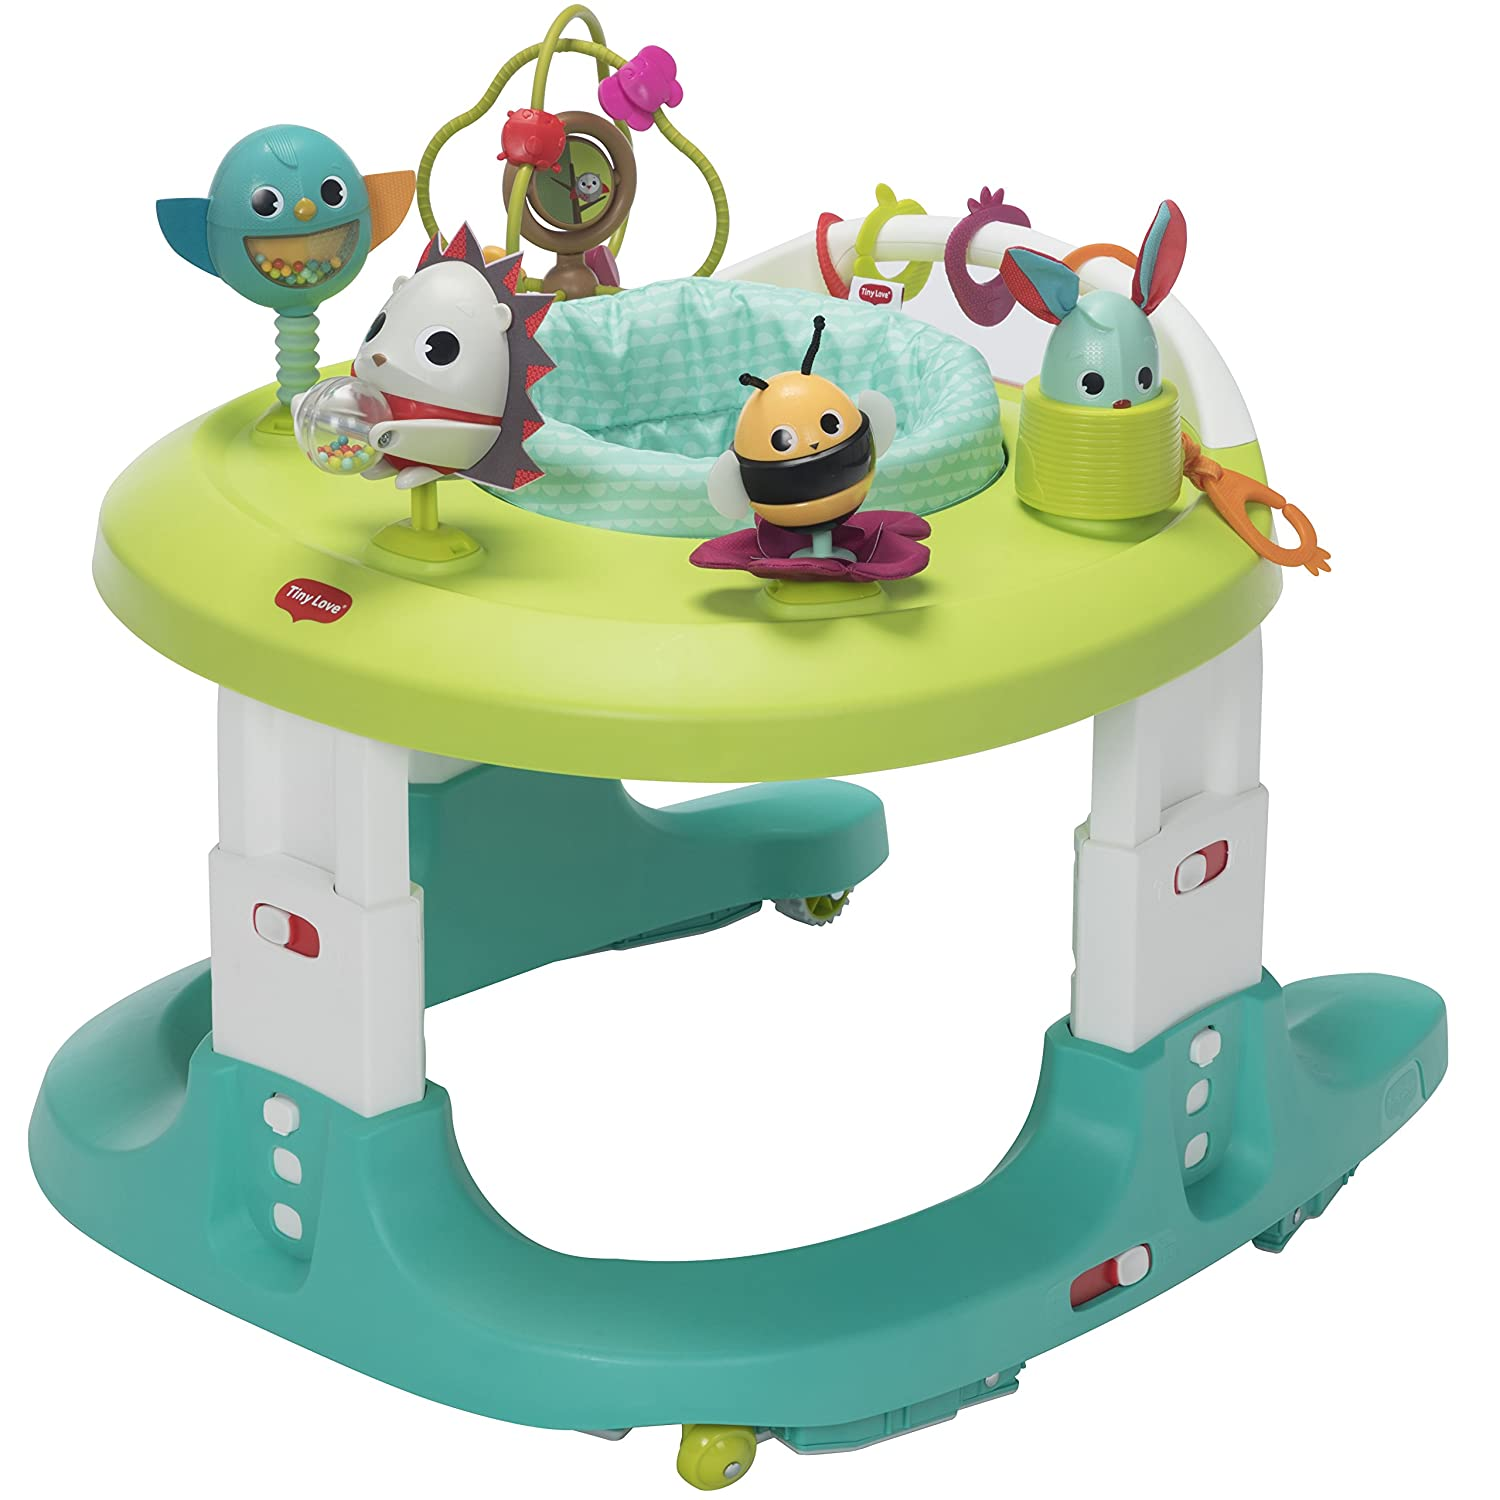 Tiny Love Meadow Days Here 4-in-1 Baby Walker